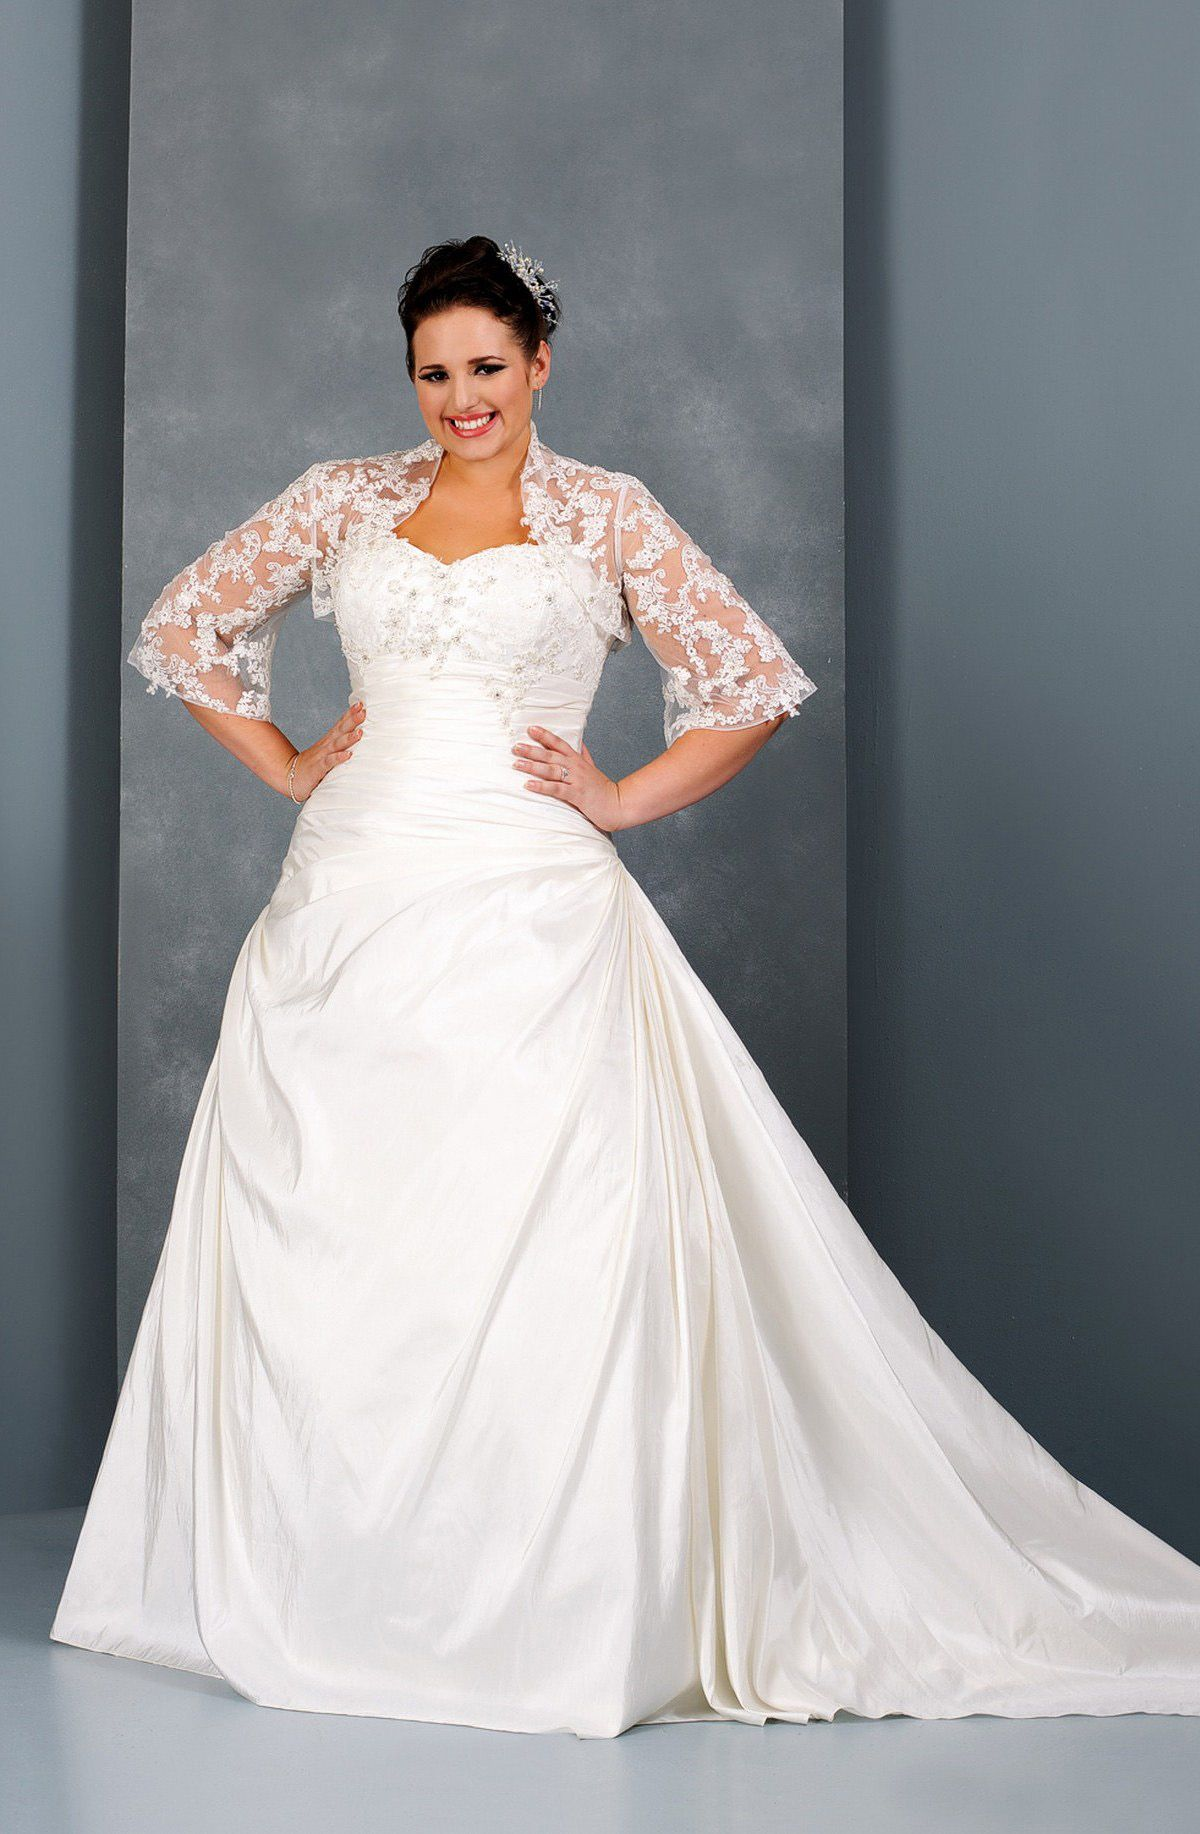 8955e34fd0e Darius Cordell Fashion Ltd - American dress makers who provide Long Sleeve  Plus Size Wedding Gowns to fuller figured curvy brides. Custom designs  available!